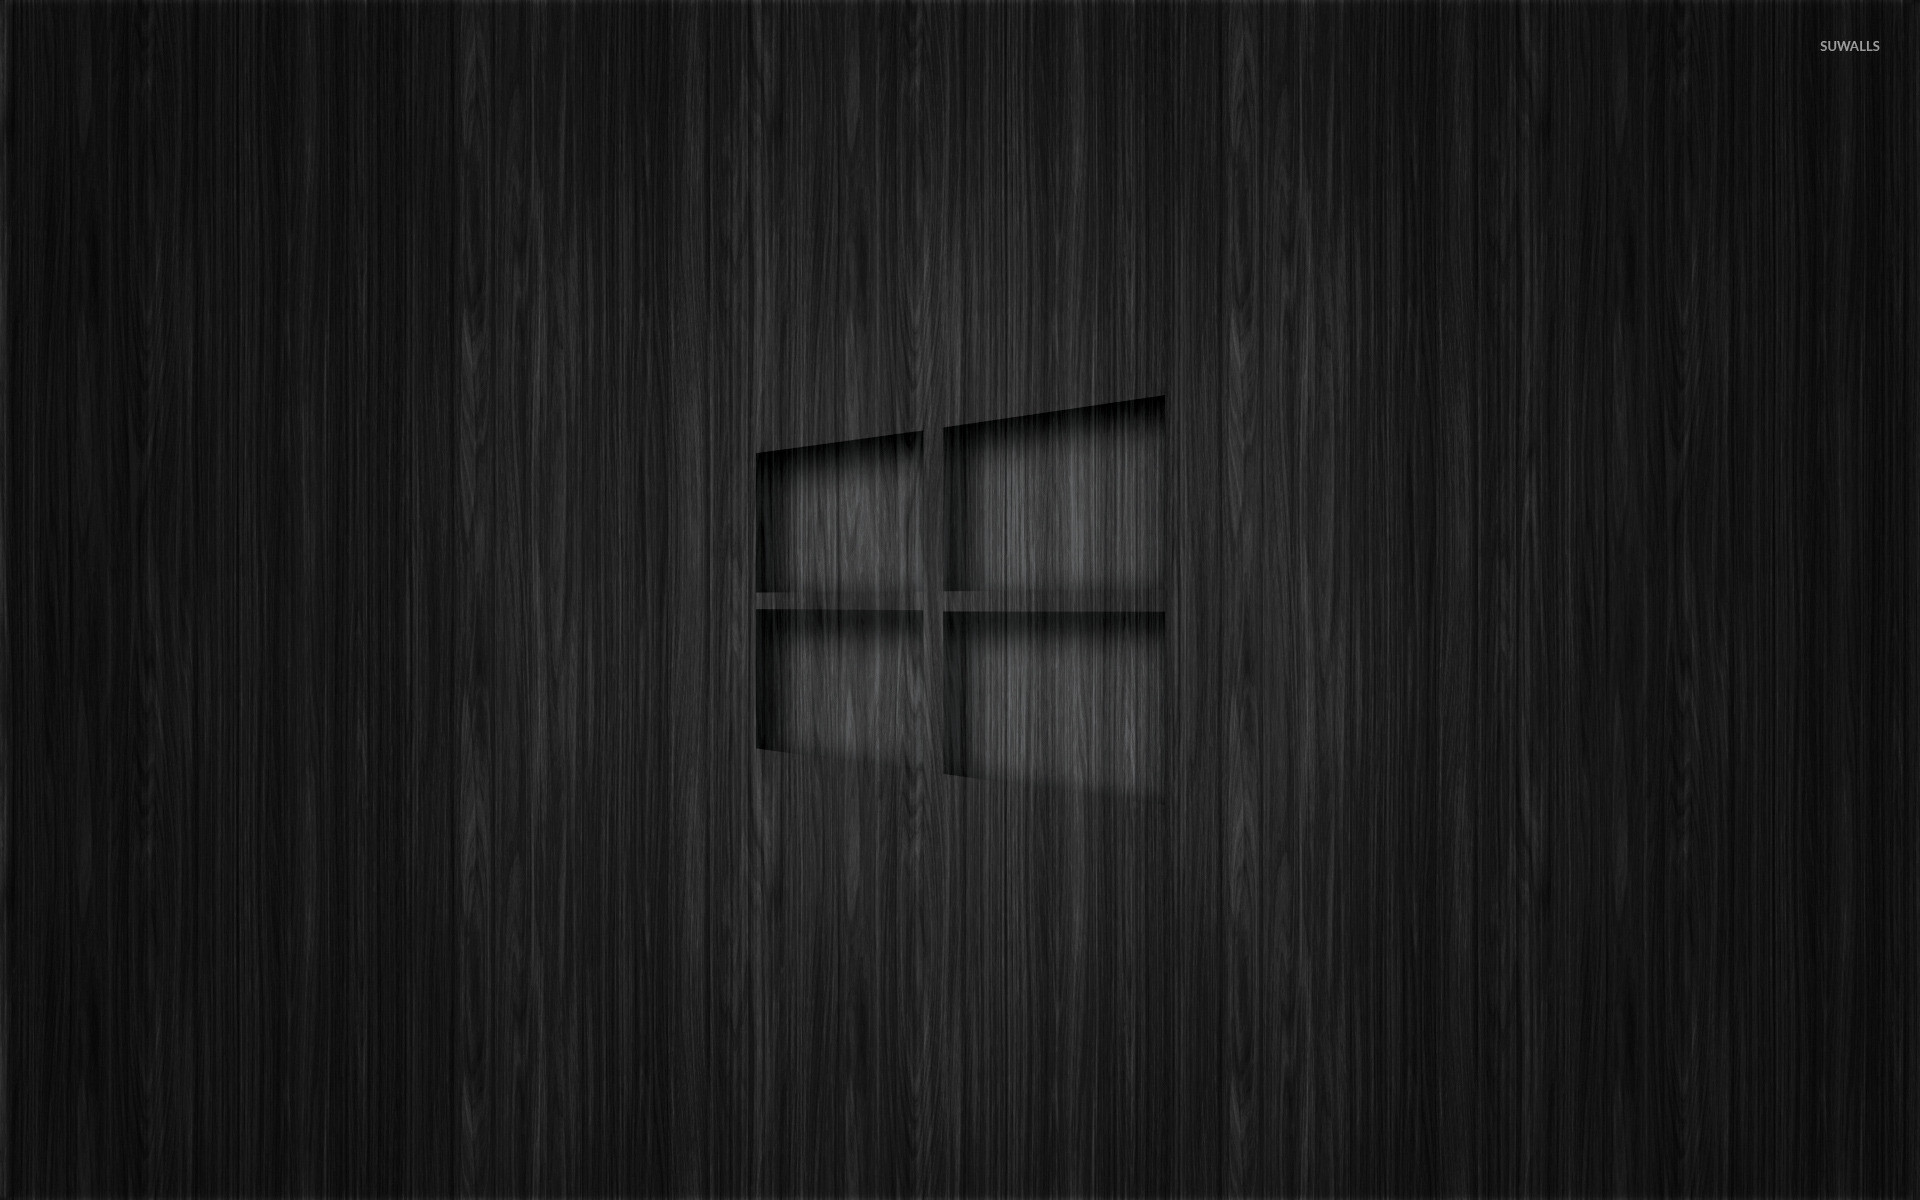 Dark Windows 10 Wallpaper 76 Images